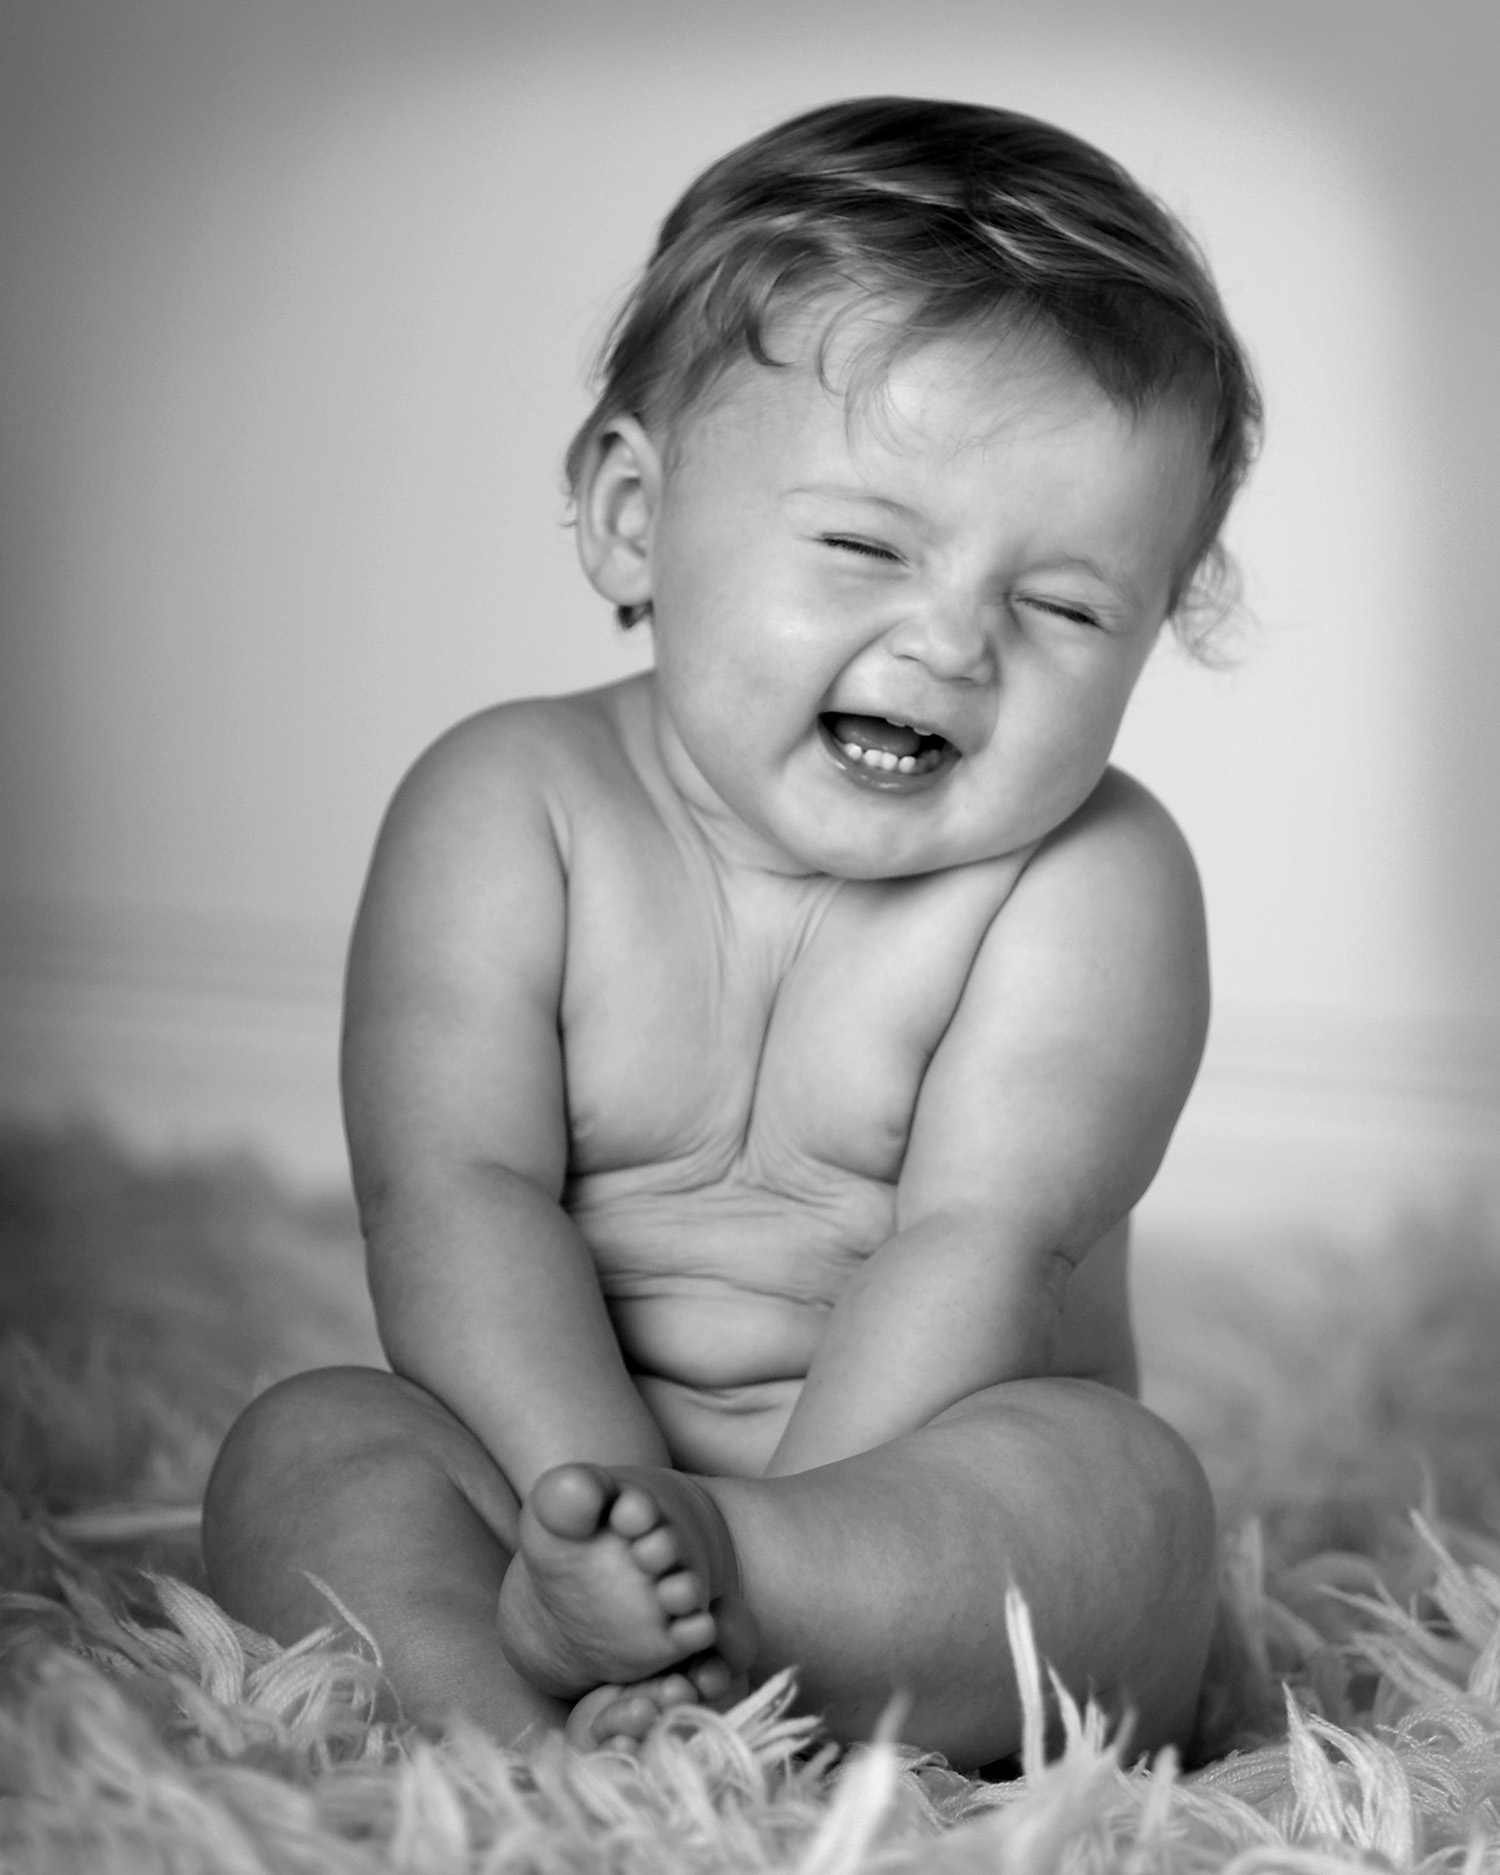 Cute Laughing Babies Wallpapers : laughing, babies, wallpapers, Laughing, Wallpapers, Group, (70+)